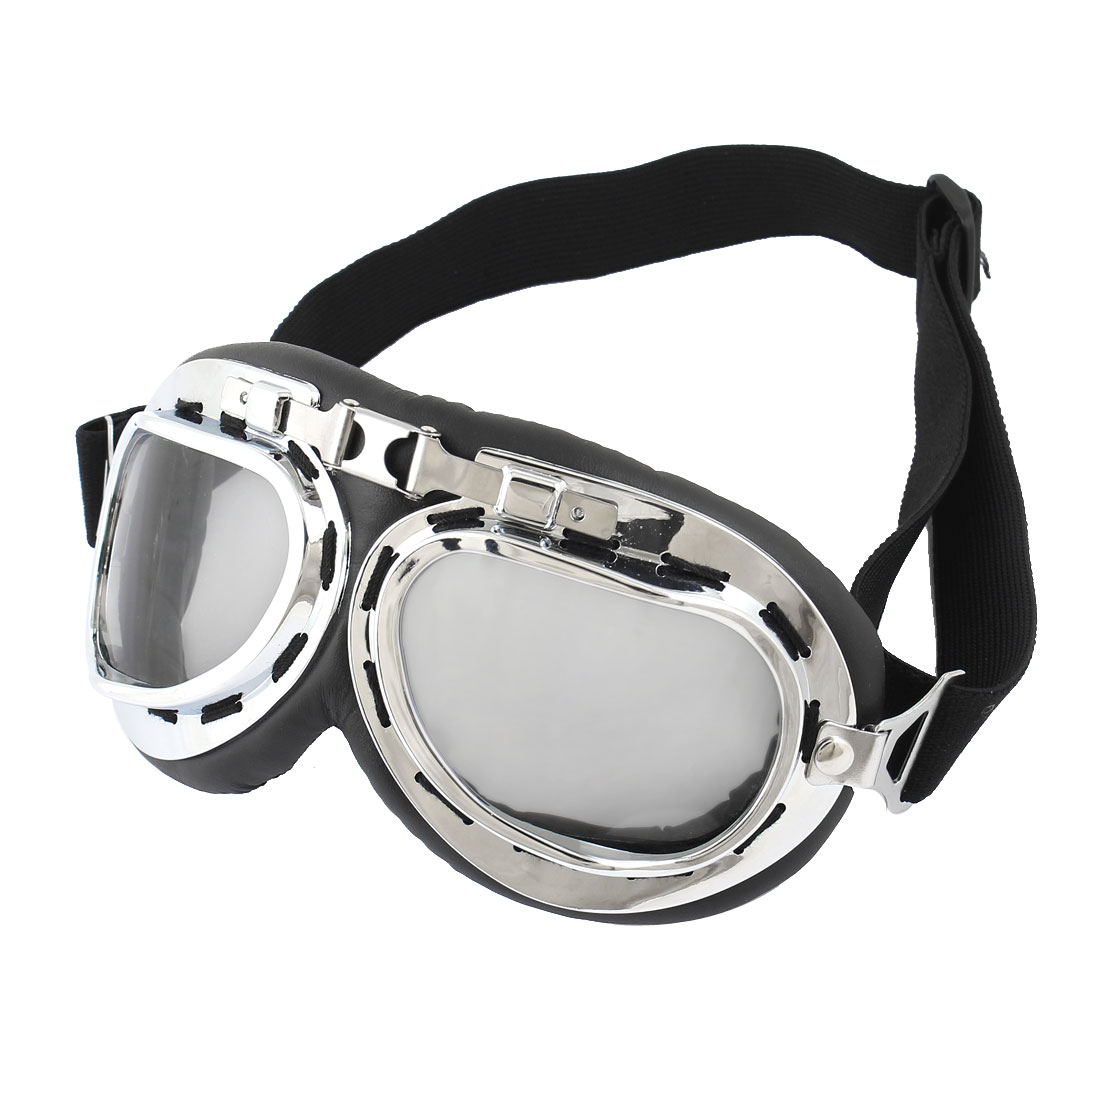 Winter Clear Gray Lens Cycling Outdoor Protective Glasses Anti Fog Ski Goggles by